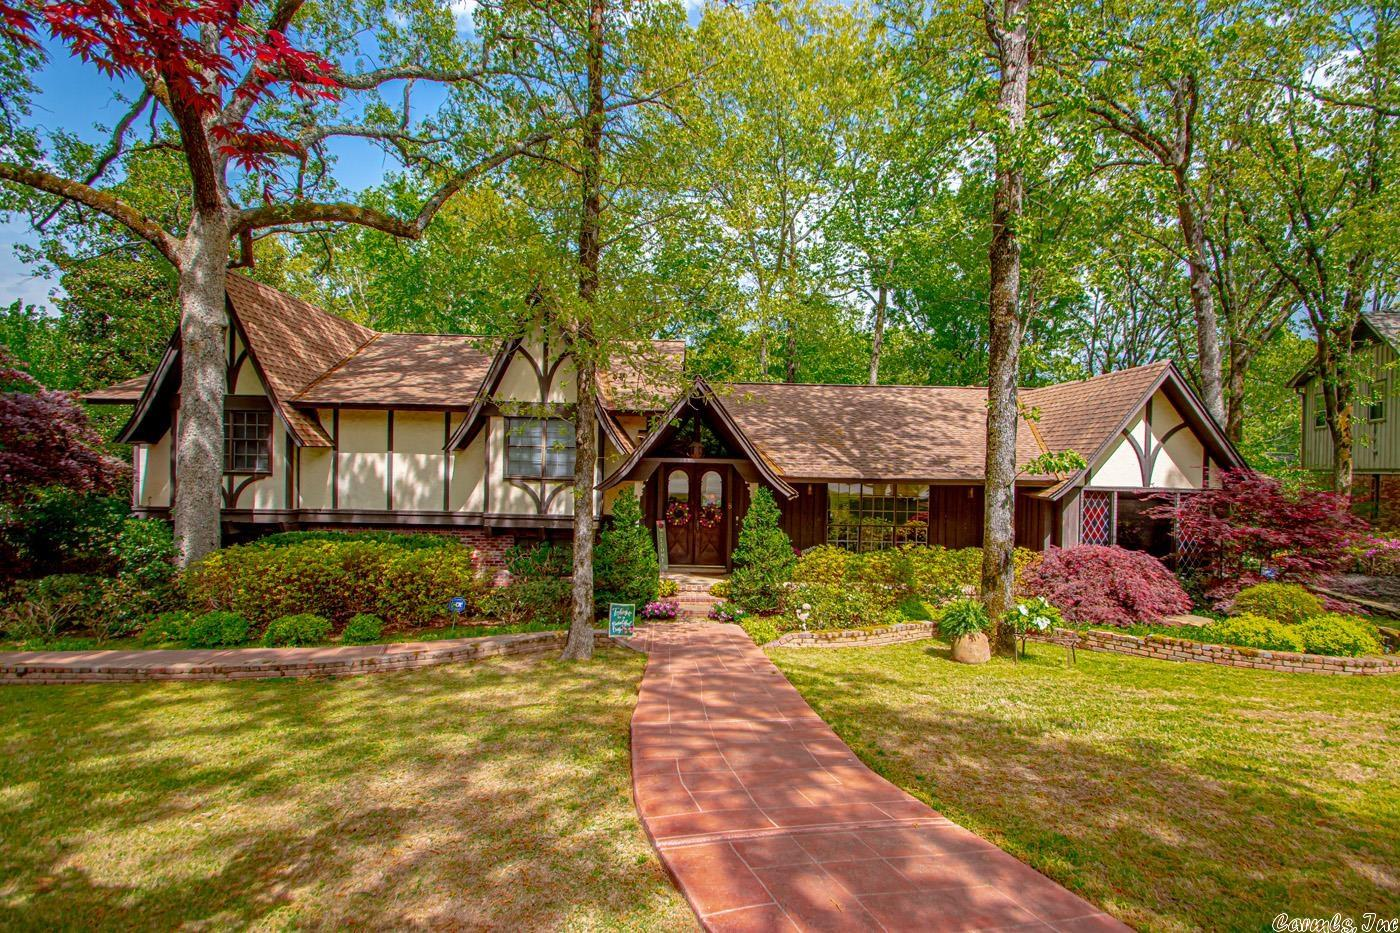 Gem in fabulous NLR Shady Valley neighborhood! Gorgeous from the street w/fabulous street appeal! Nestled in cul-de-sac w/larger homes. Back deck is incredible! Grtroom has vaulted ceiling & wood-burning brick FP. Stunning front doors w/brick floor in foyer w/vaulted ceiling. Eat-in kitchen features pretty window above sink &bay window. 2nd living area. Separate diningrm currently used as office. Master suite is huge w/vaulted ceiling. 2 car side-load garage. Roof less than 10 yrs old per seller. SOLD AS IS